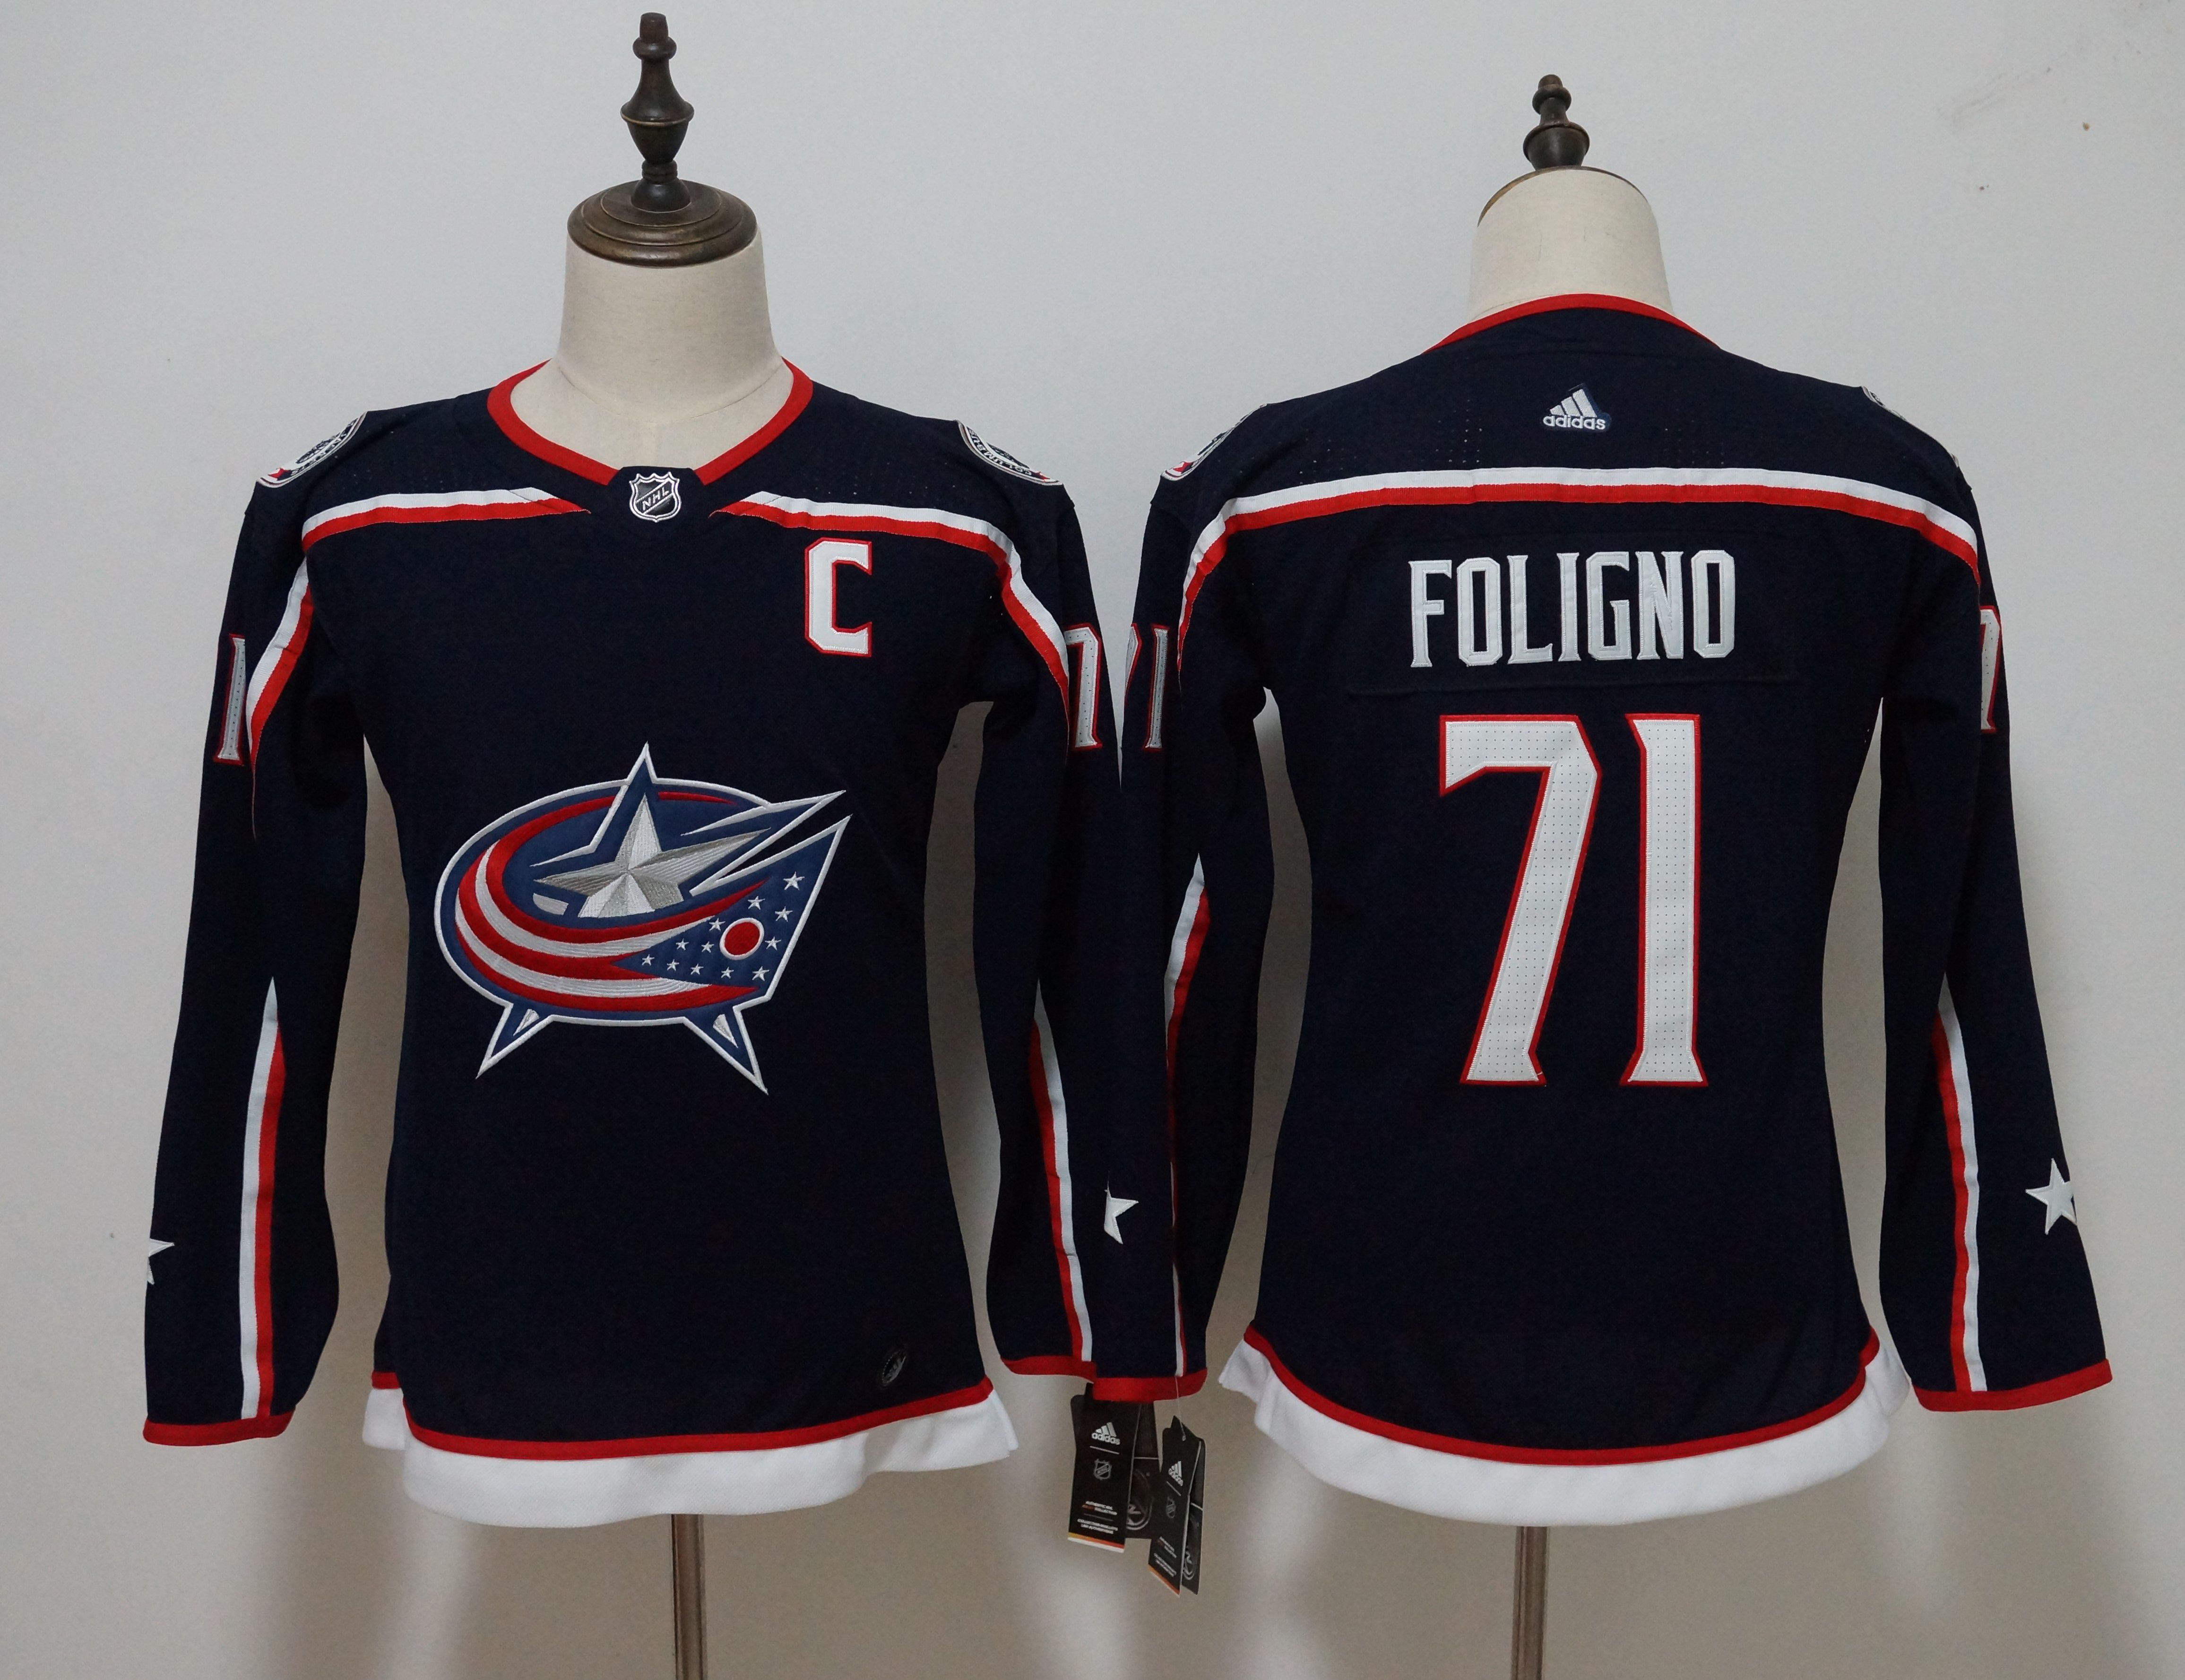 3f2ac41b4 ... reduced 77 josh anderson navy blue home authentic stitched nhl jersey  45.00. women columbus blue